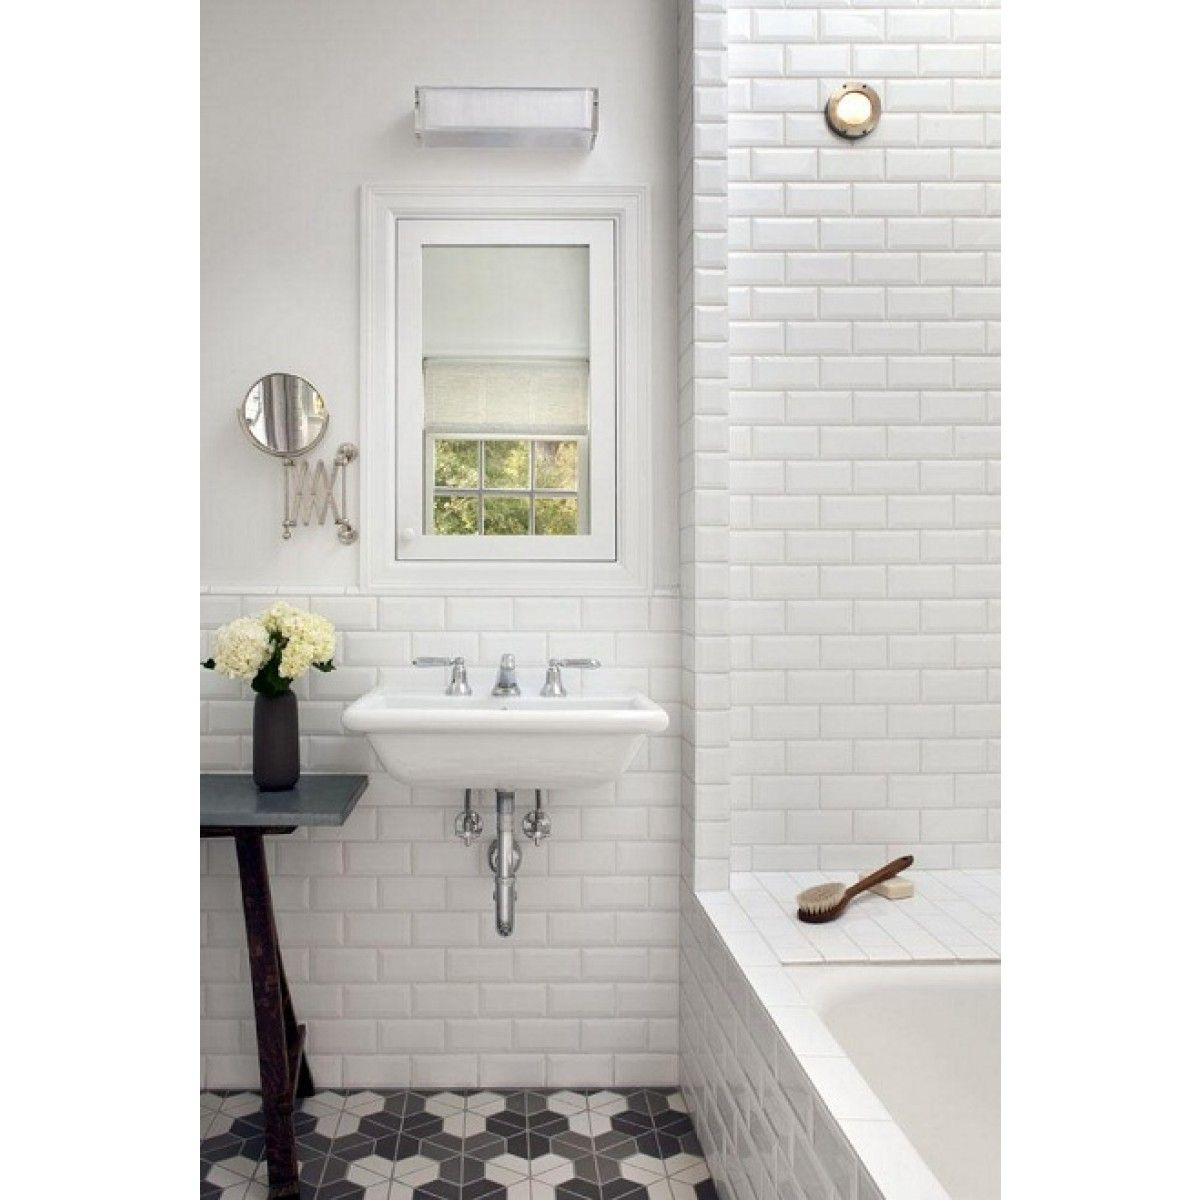 Mini Metro White Wall Tiles | Pinterest | White wall tiles, Tiles ...